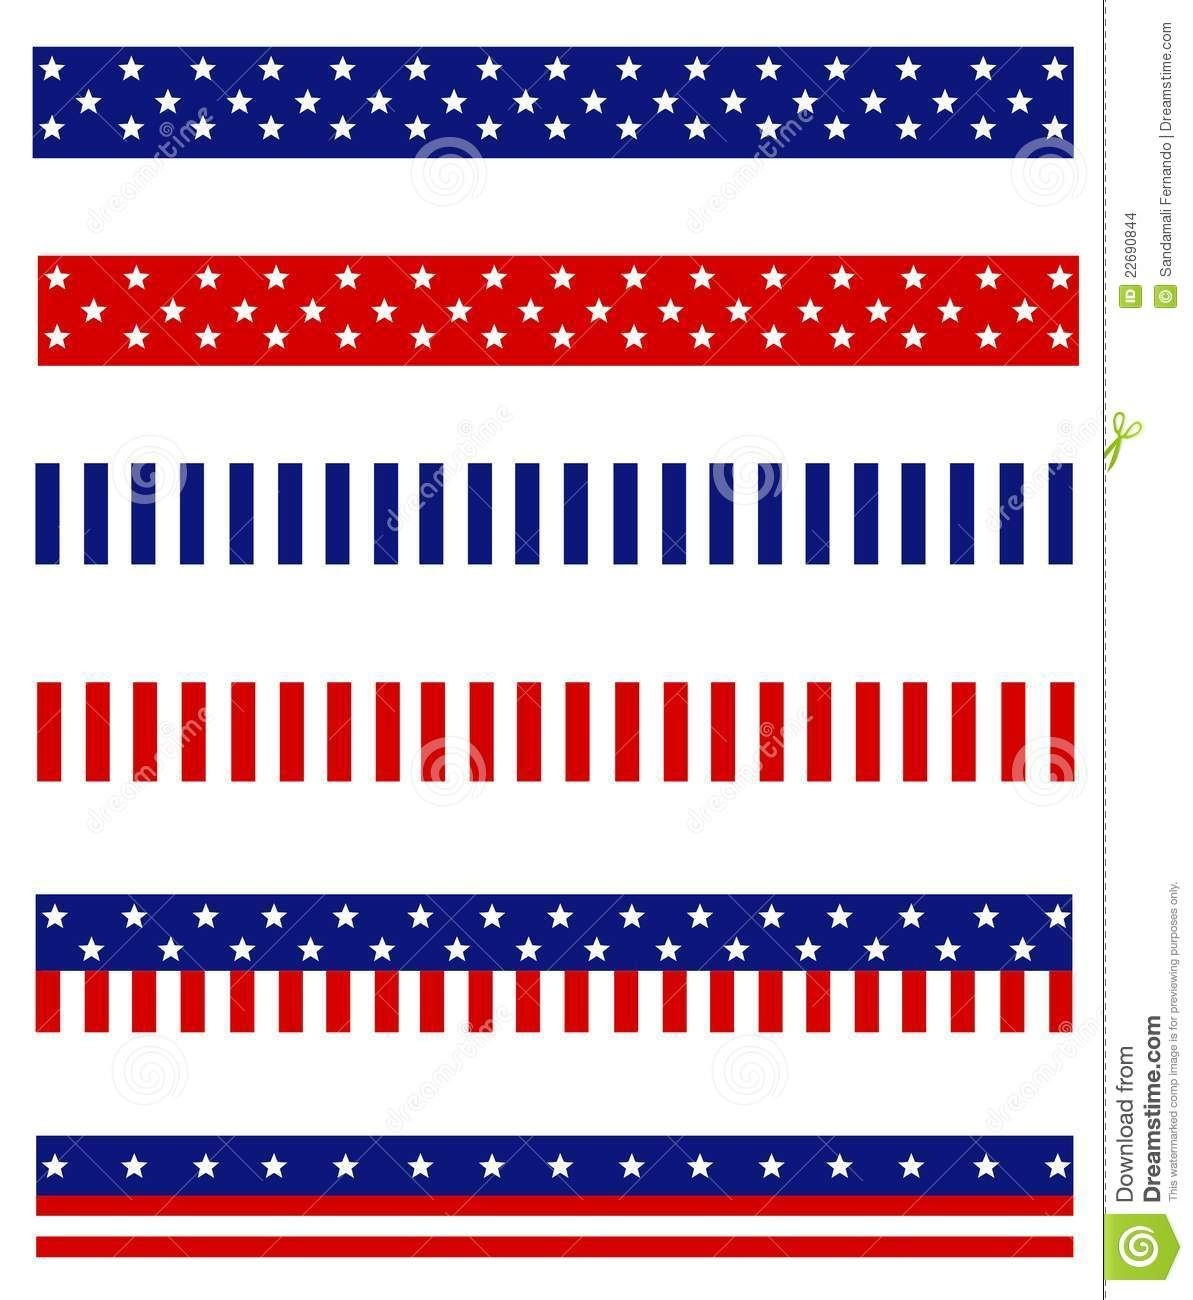 Image Result For Patriotic Borders Free Printable | Patriotic - Free Printable Christmas Bulletin Board Borders